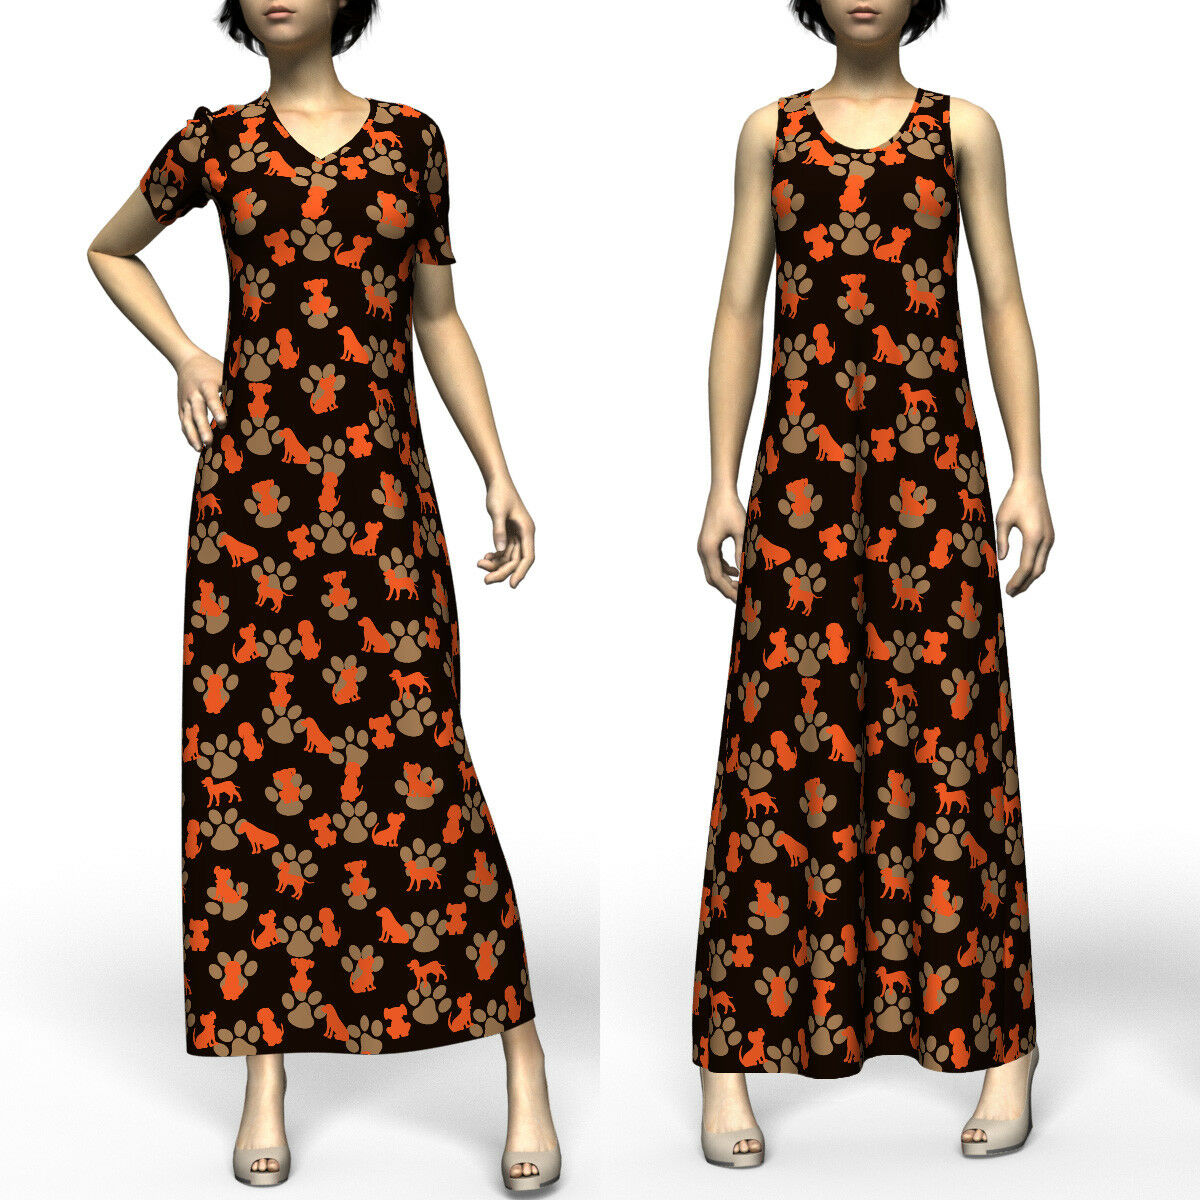 Dogs & Paws Cute Modest Short Sleeve & & & Sleeveless Maxi Dress Size XS-5XL Plus 4fc287